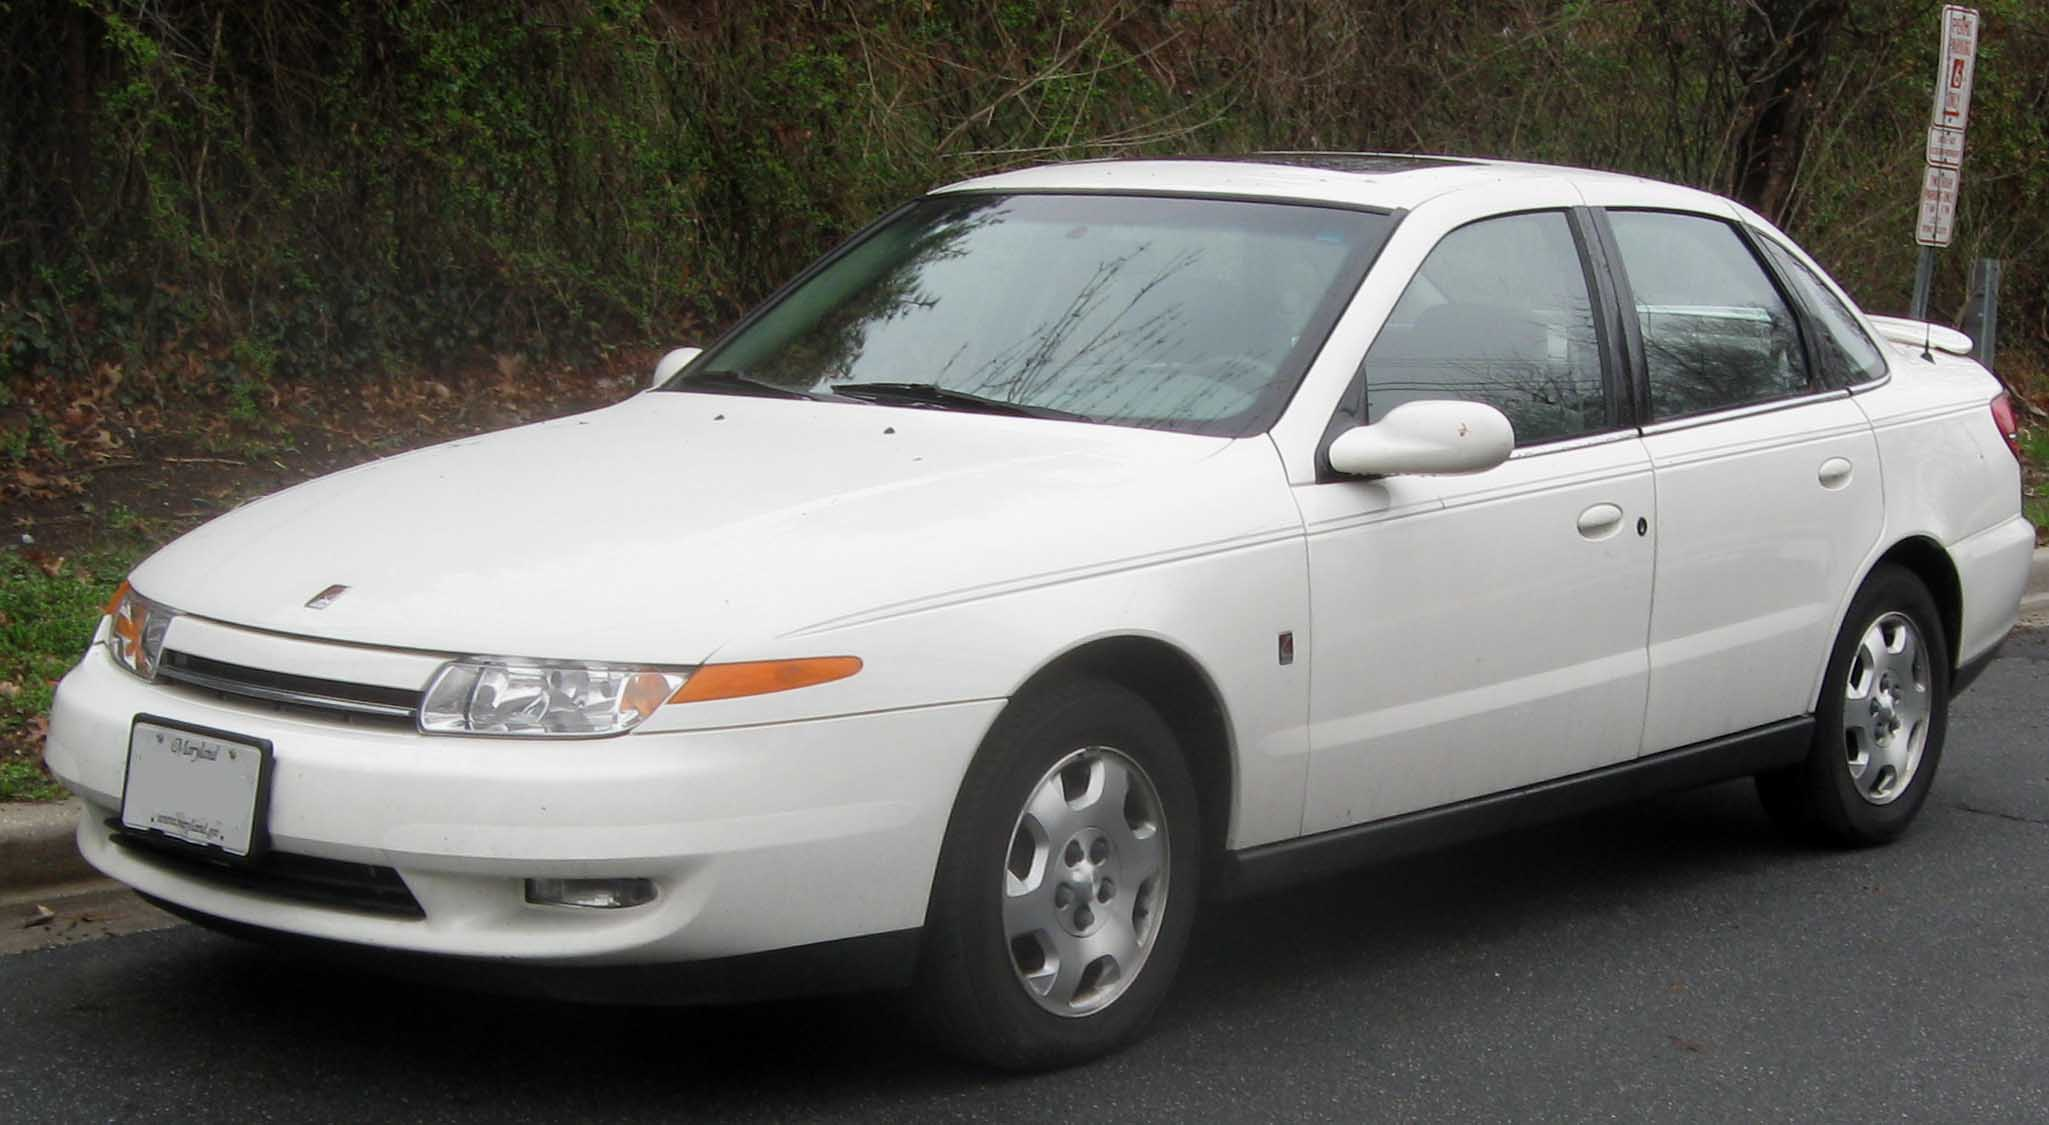 2001 Saturn L-series - Information And Photos